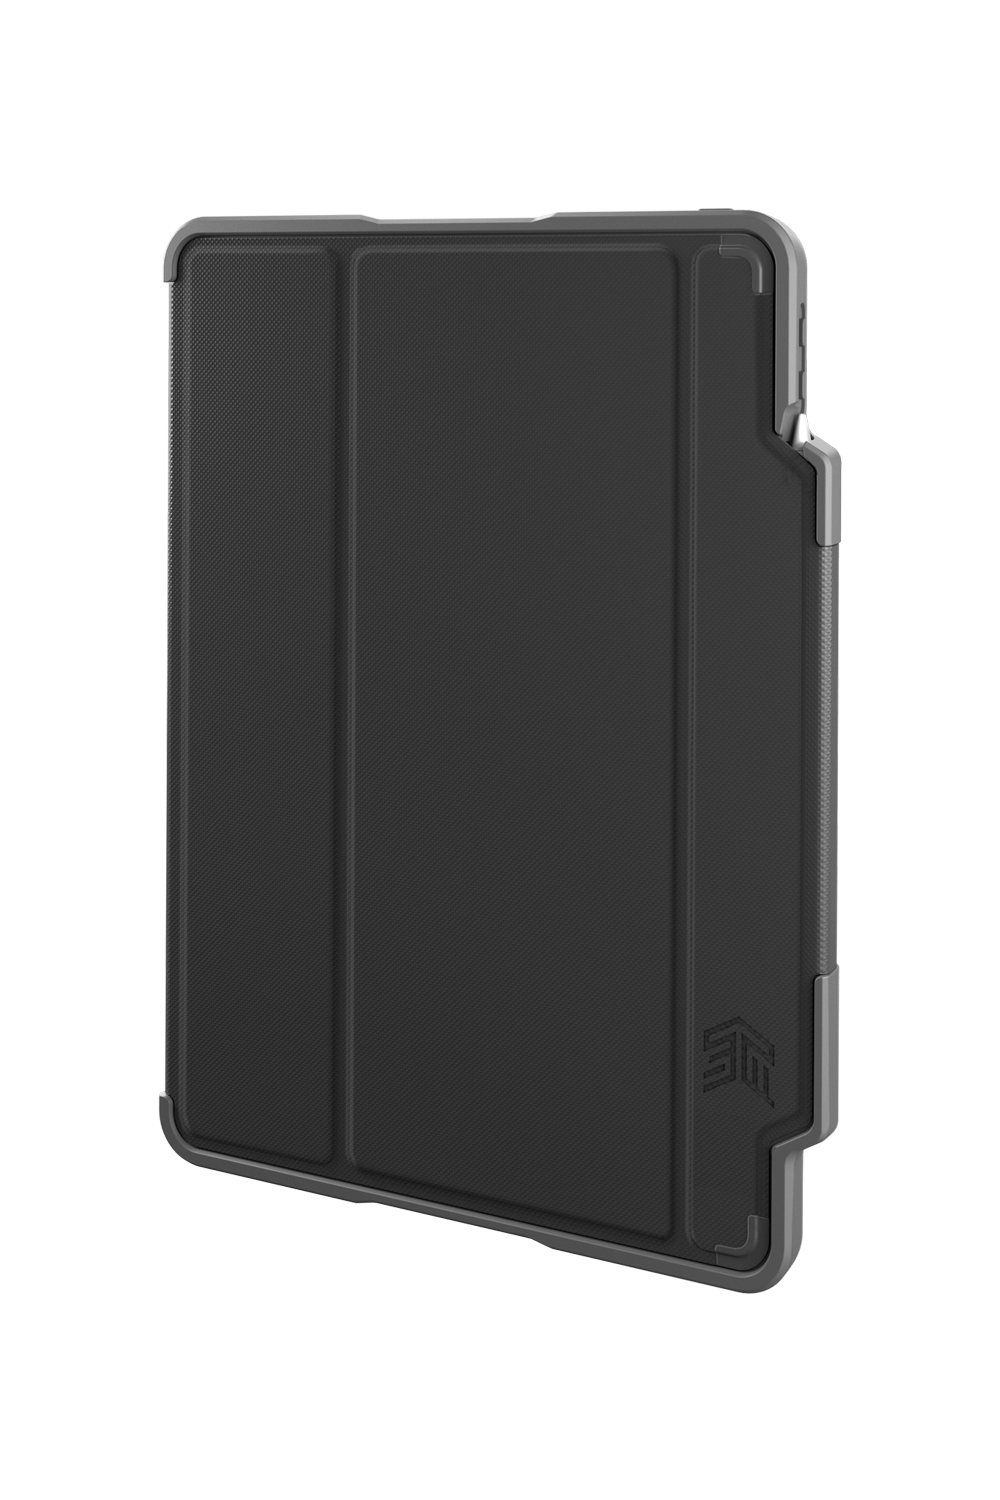 STM Dux Plus Duo Case | Apple iPad Pro 11 - inch (2nd Generation